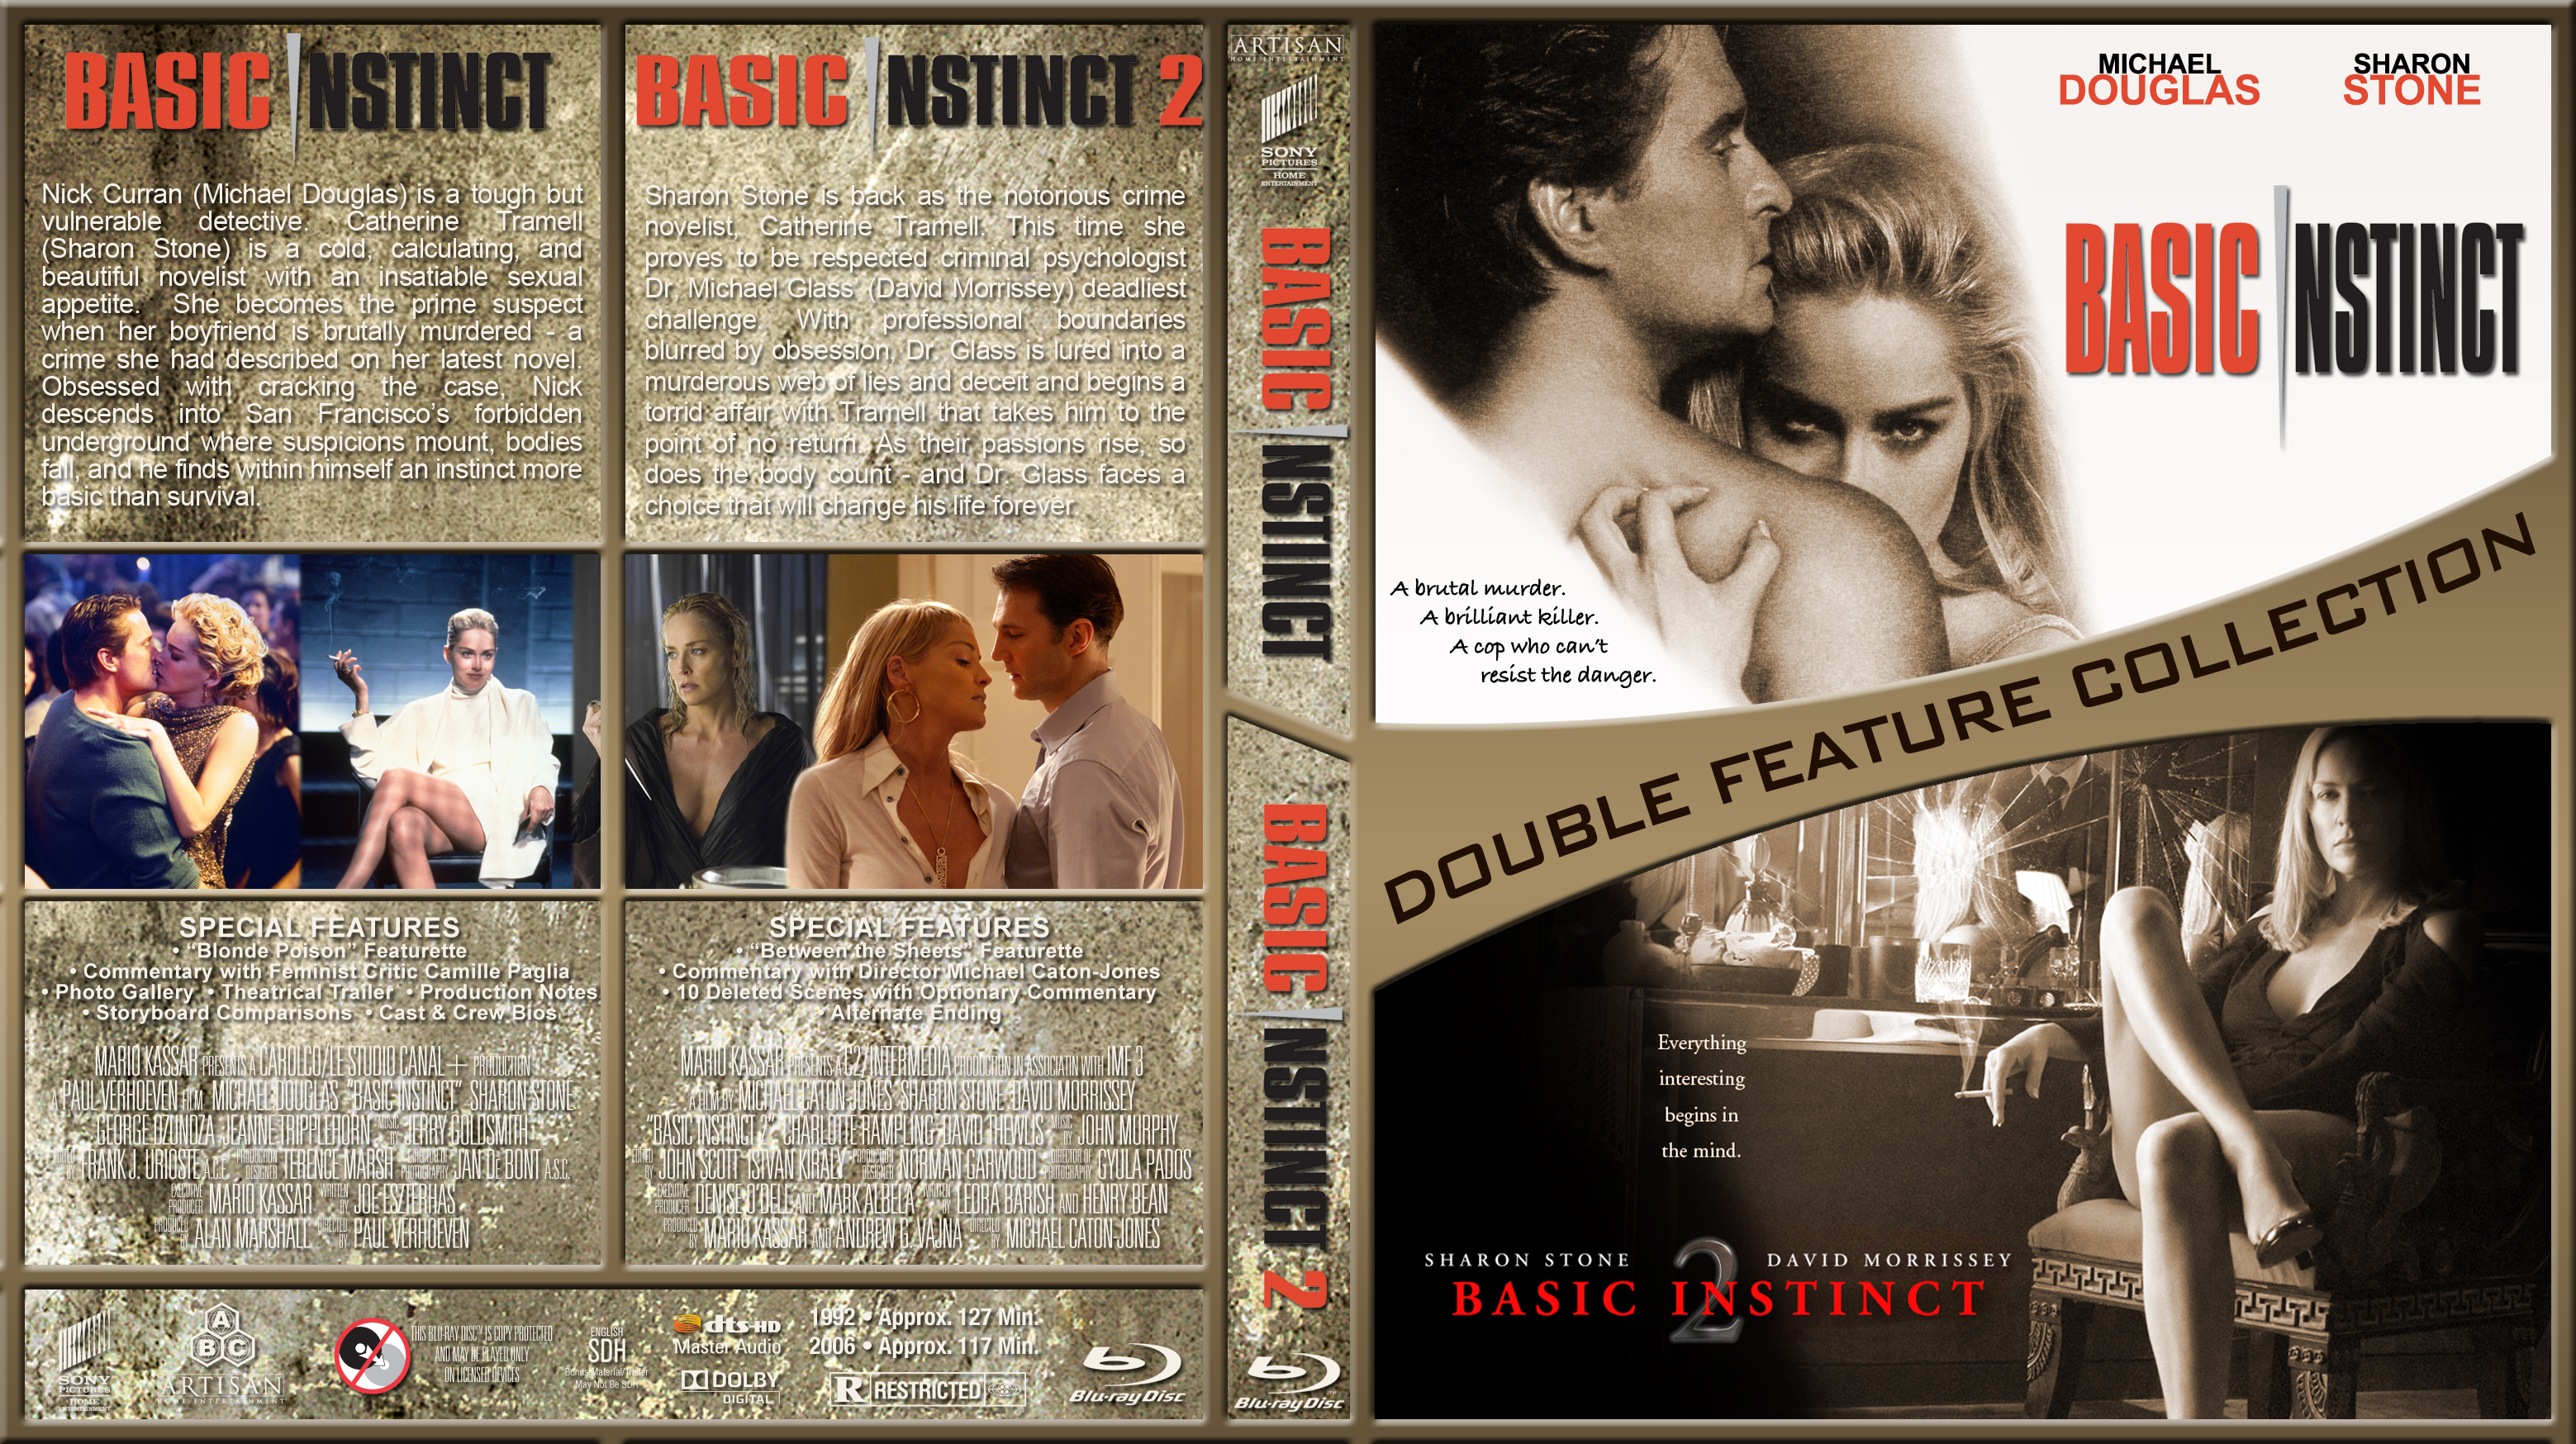 Basic Instinct Double Br Dvd Covers Cover Century Over 500 000 Album Art Covers For Free